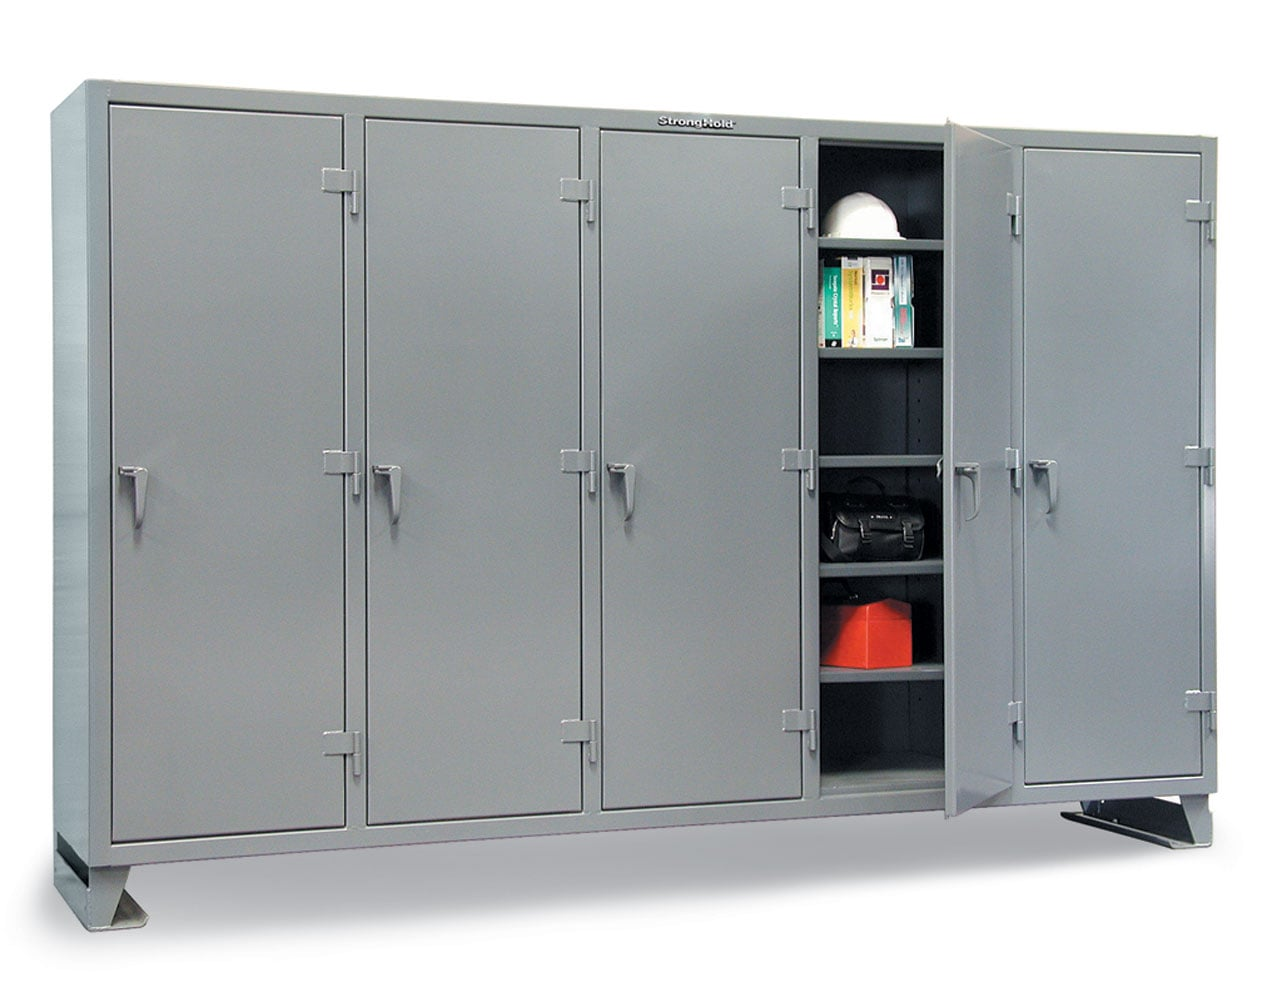 Extreme Duty 12 GA Multi-Shift Cabinet with 20 Shelves – 98 In. W x 24 In. D x 78 In. H